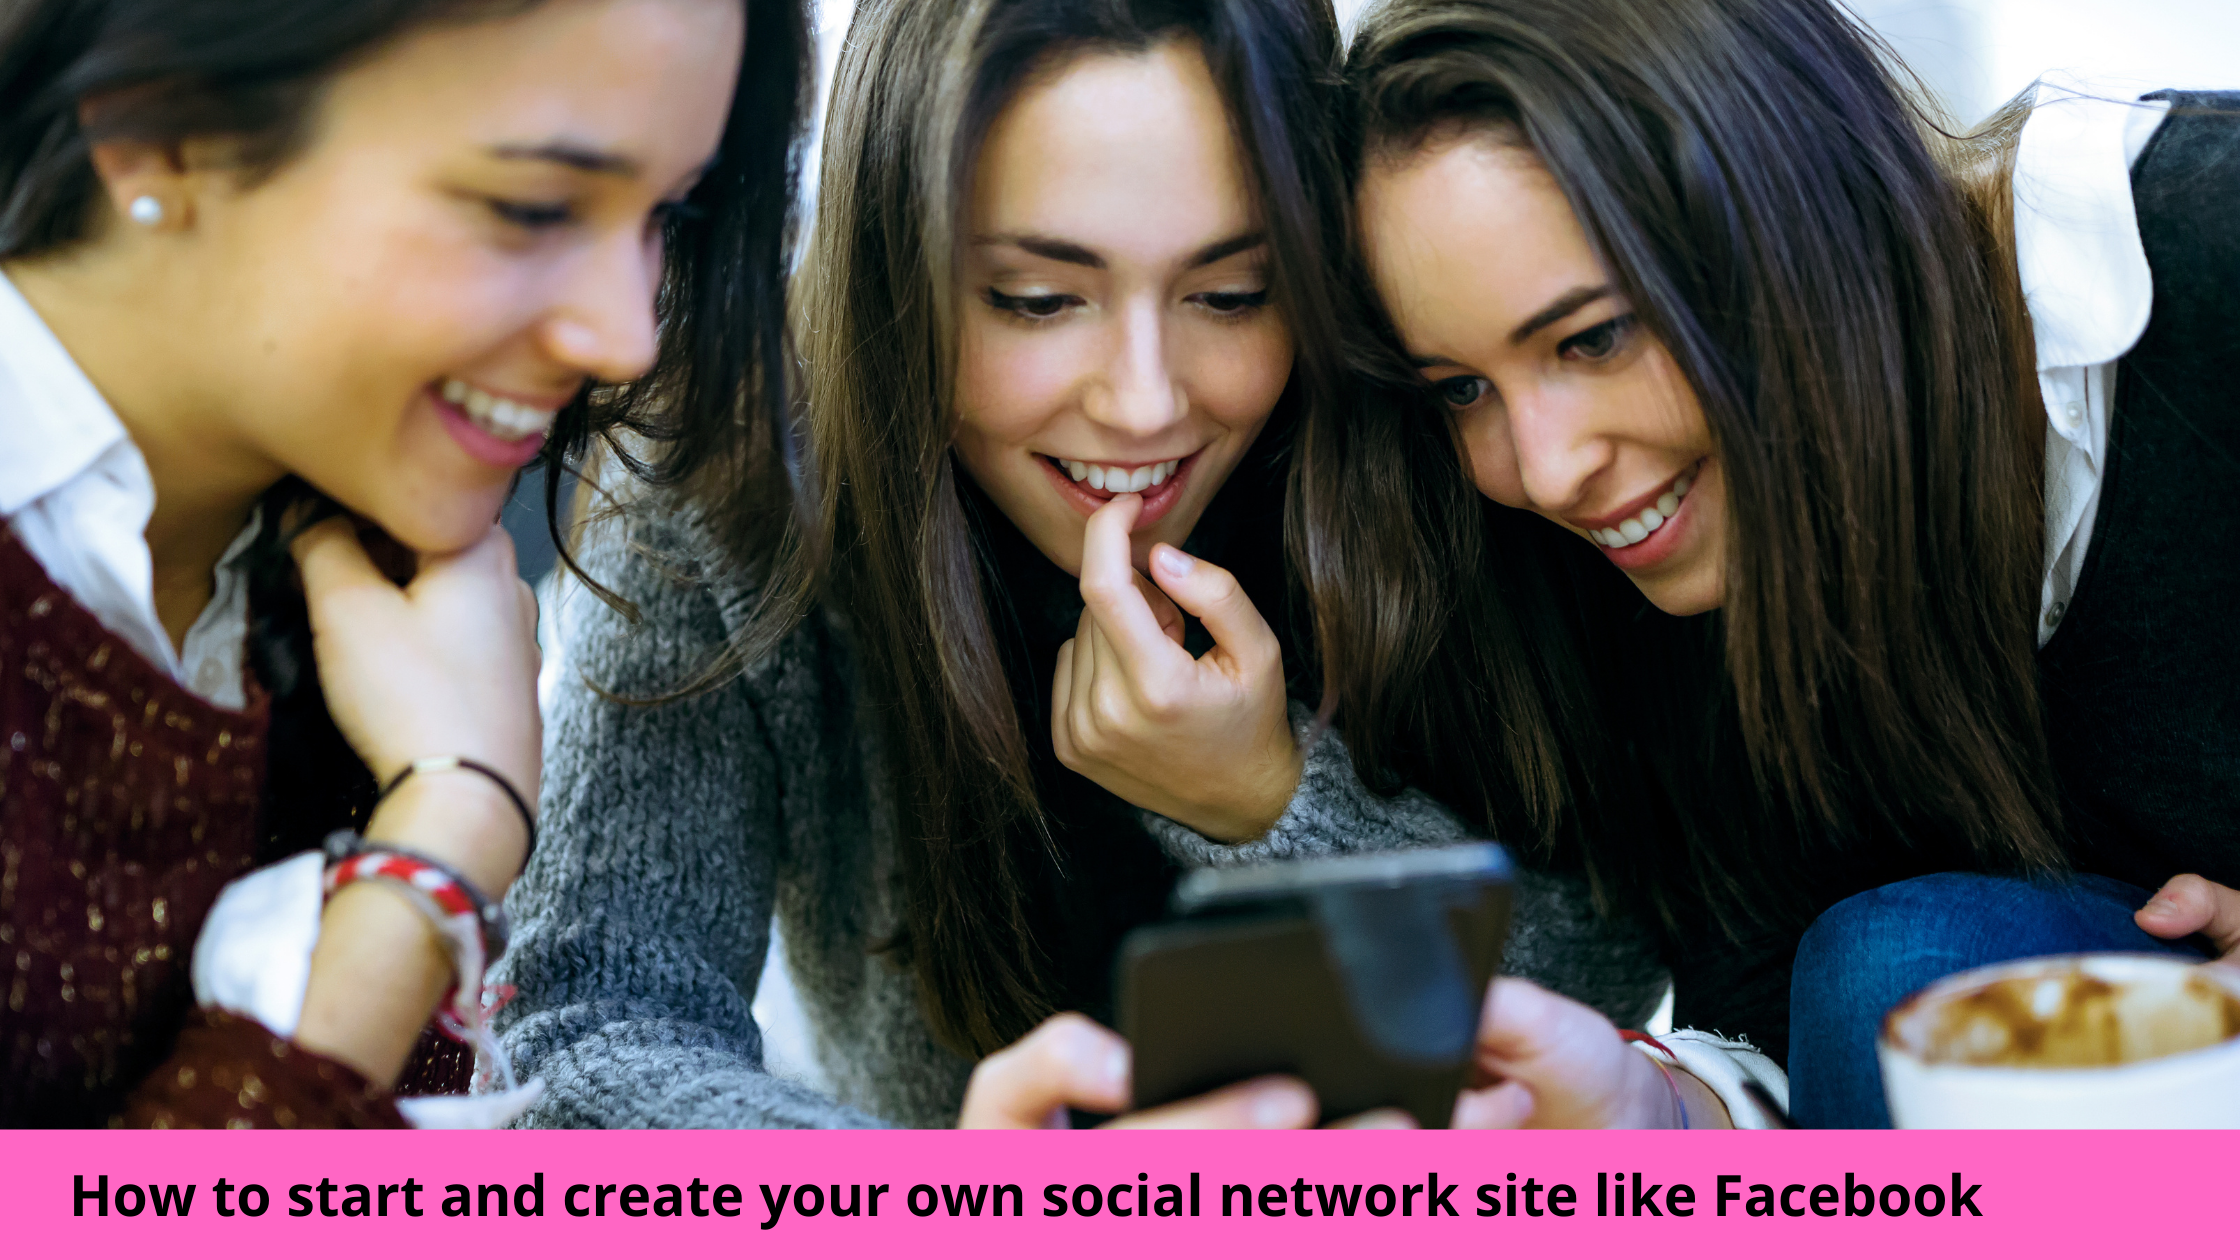 How to Start and Create Your Own Social Network Site